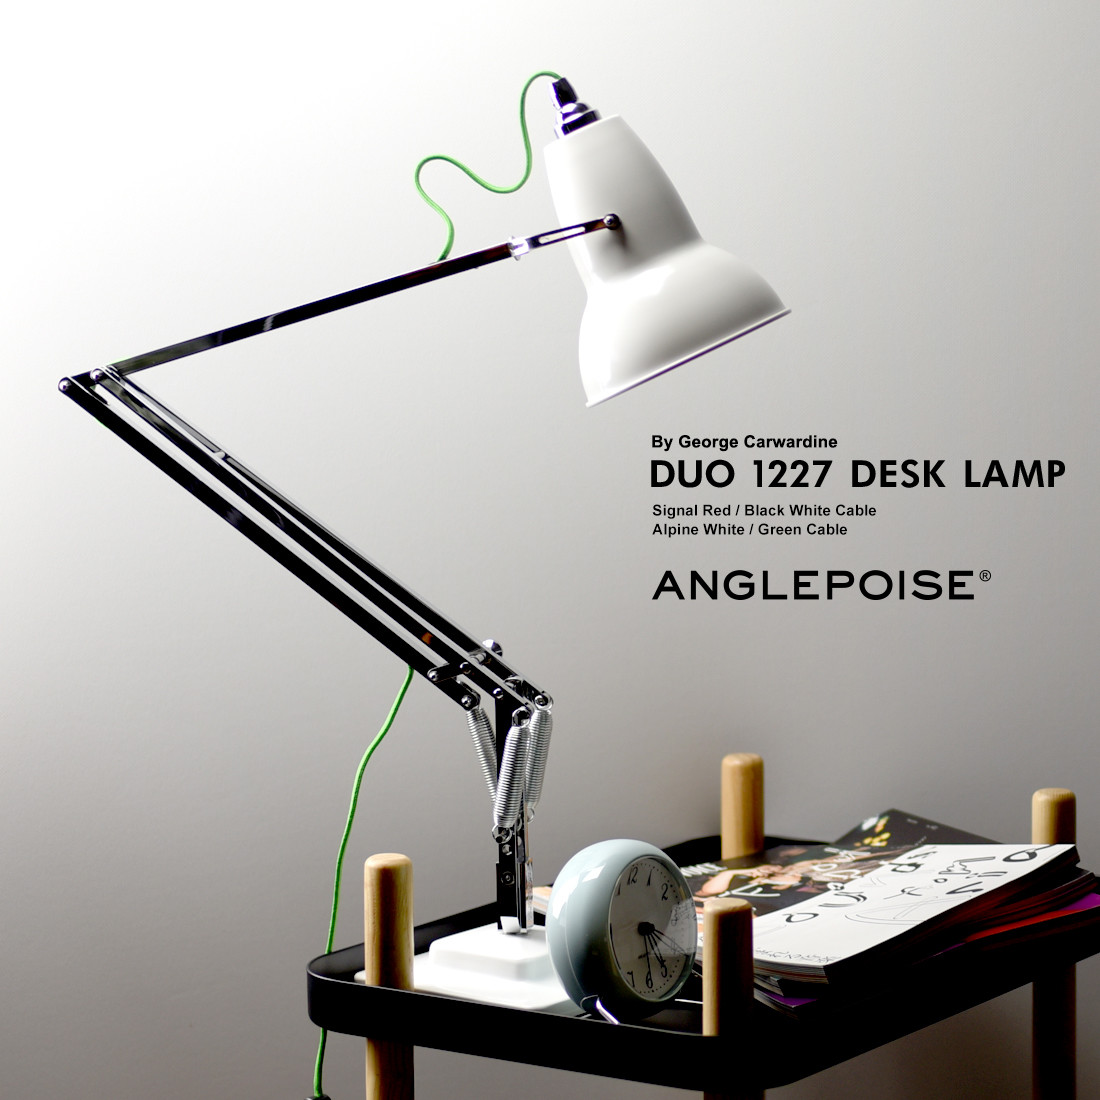 【ANGLEPOISE デスクライト【ANGLEPOISE テーブルランプ アングルポイズ】DUO 1227 DESK LAMP テーブルランプ 照明 デスクライト 北欧【コンビニ受取対応商品】, ぶつだんのもり:66f3af8d --- sunward.msk.ru